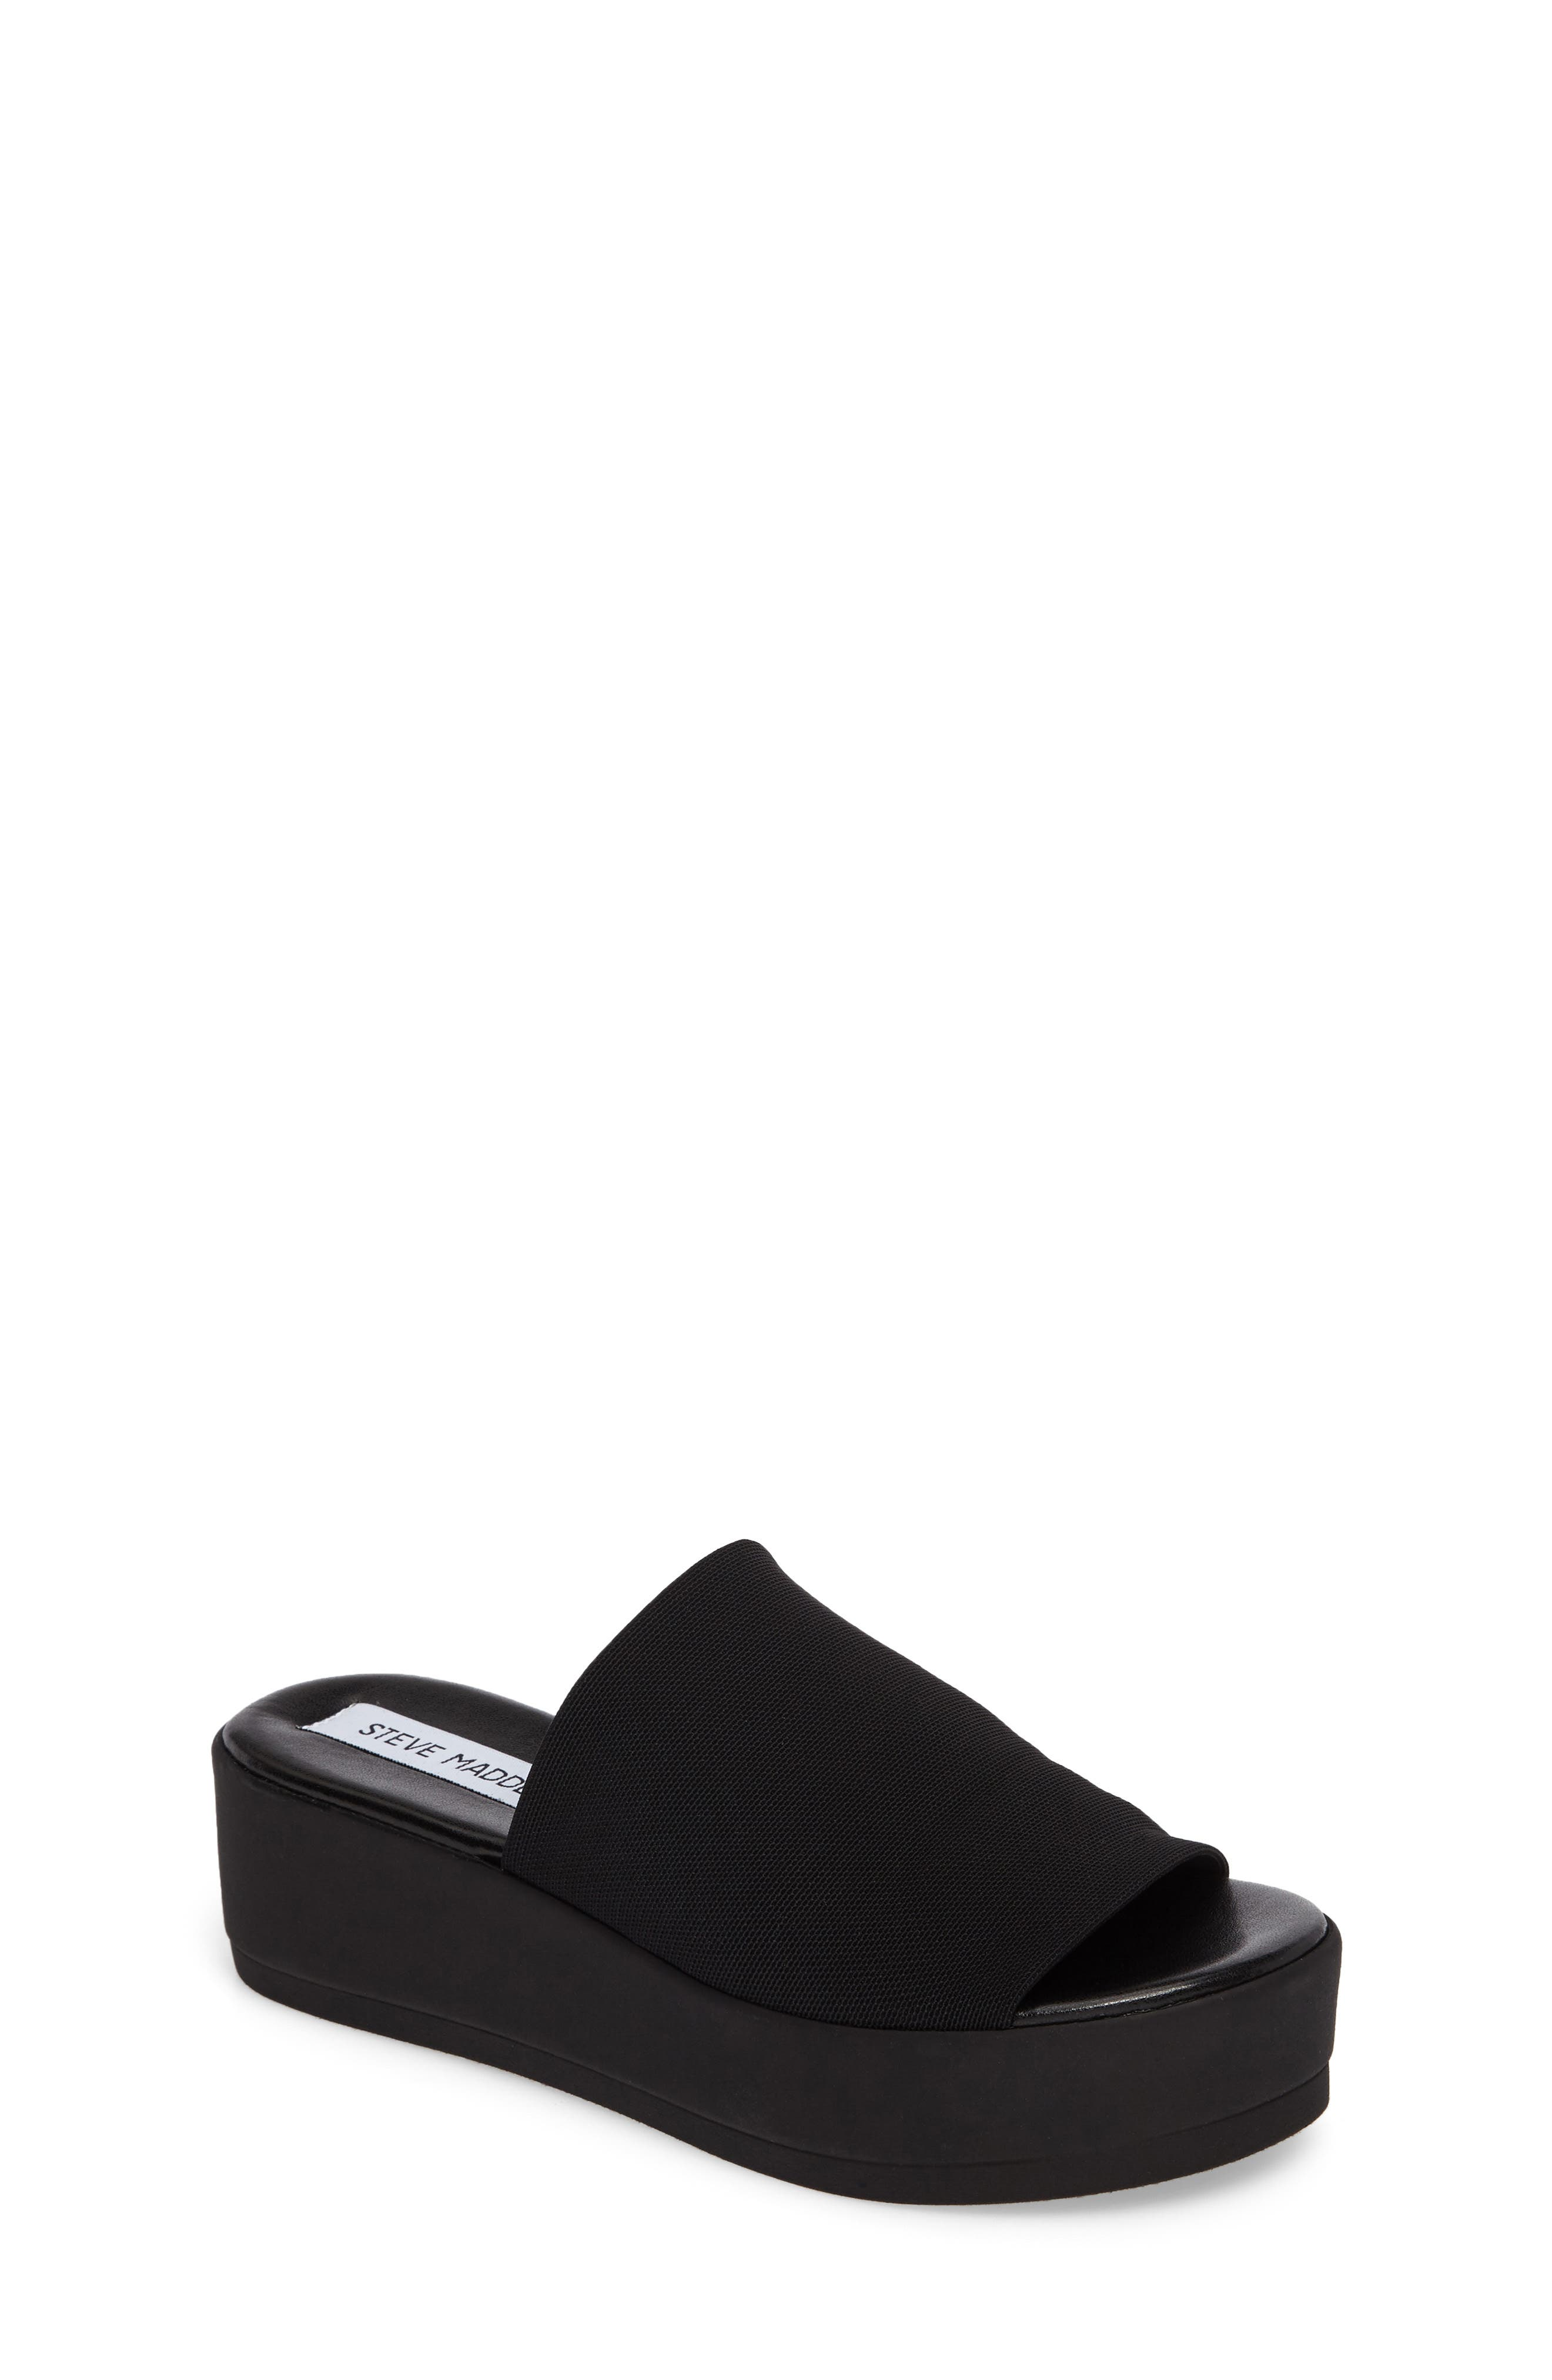 Jslinky Platform Slide Sandal,                         Main,                         color,